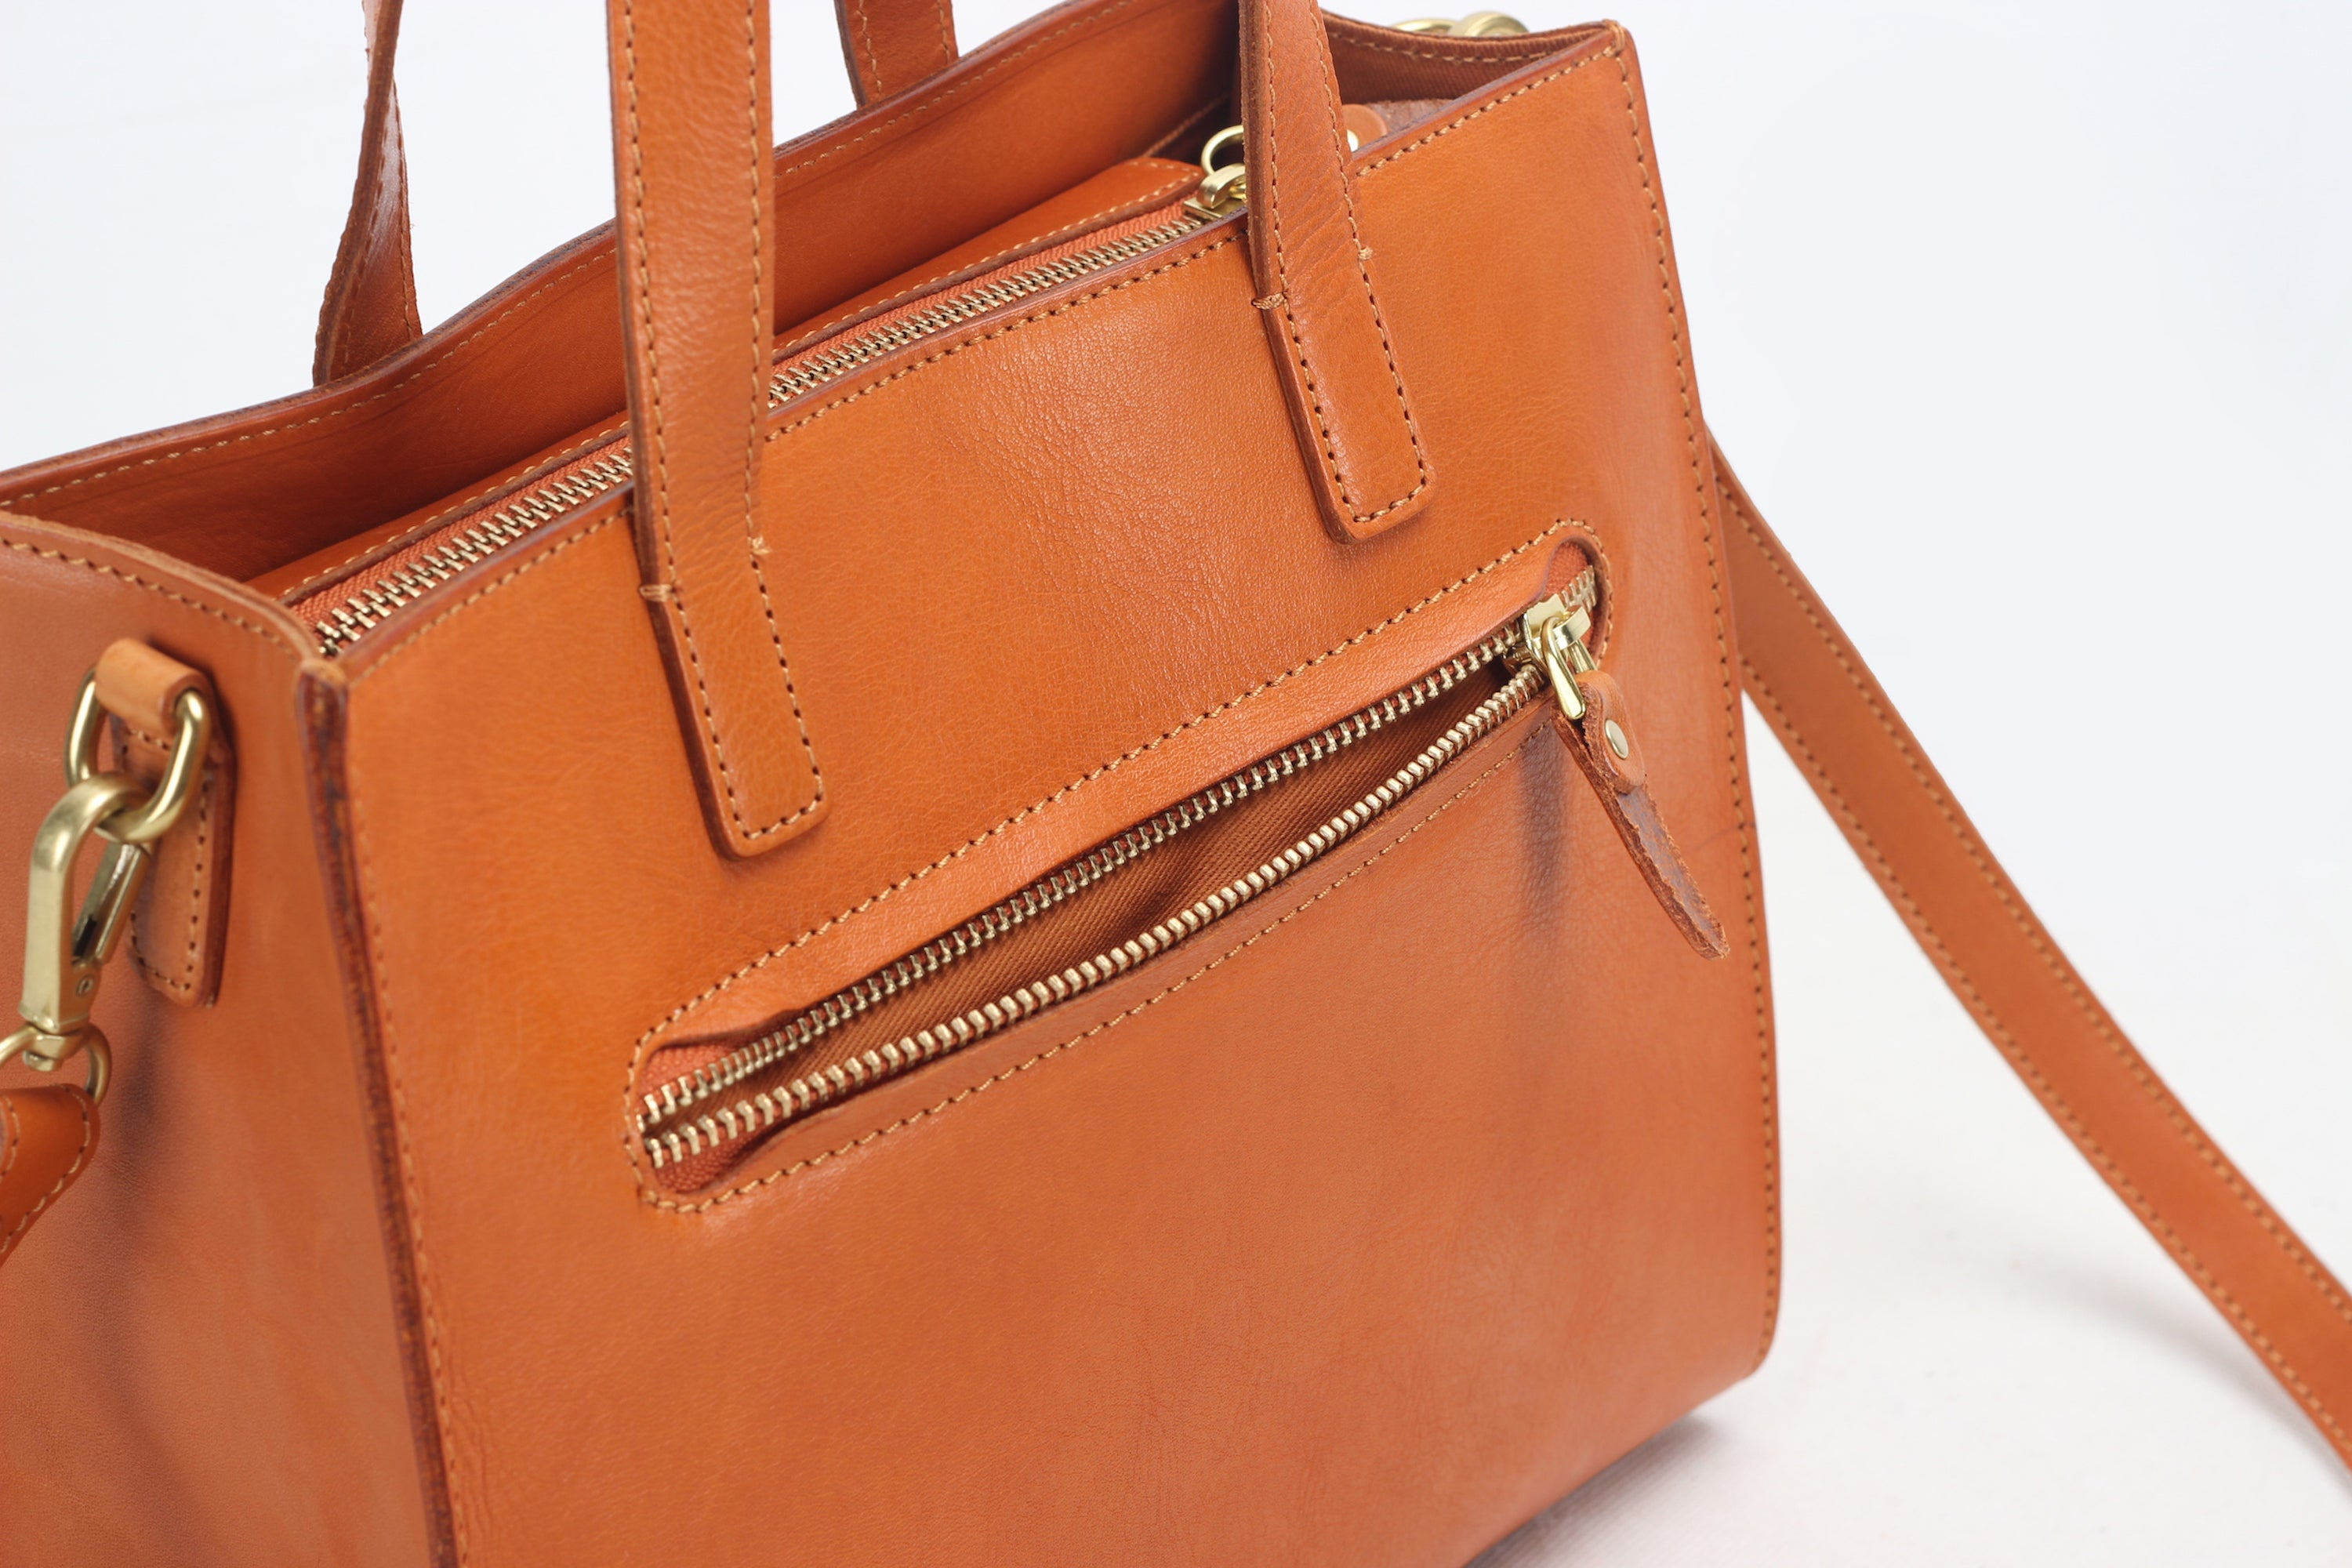 The Classic Tote